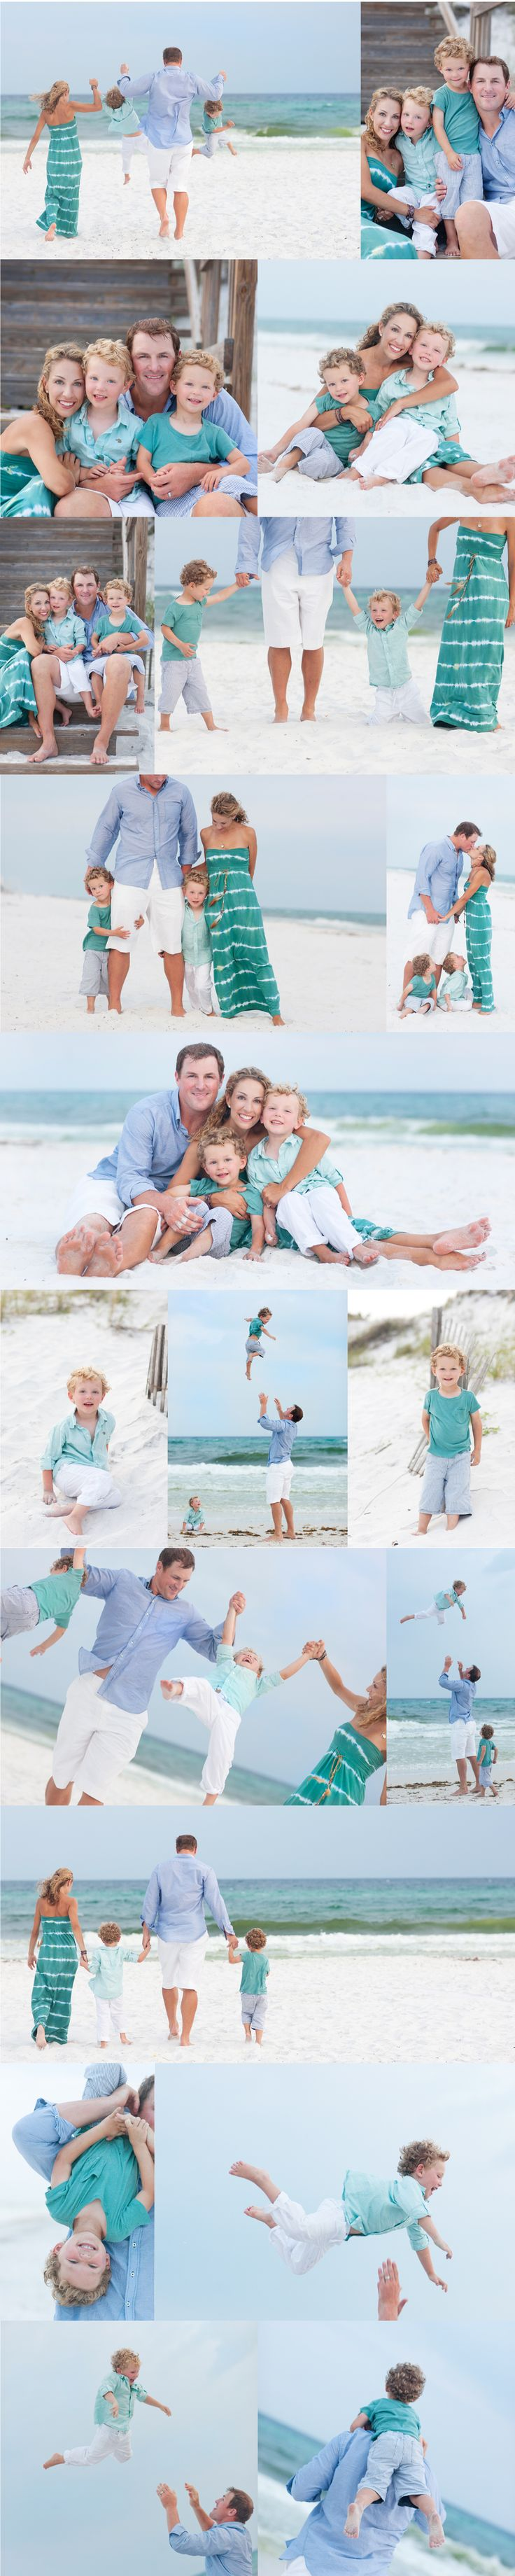 Beautiful Family Beach Poses family portrait ♥ love the outfit colors!